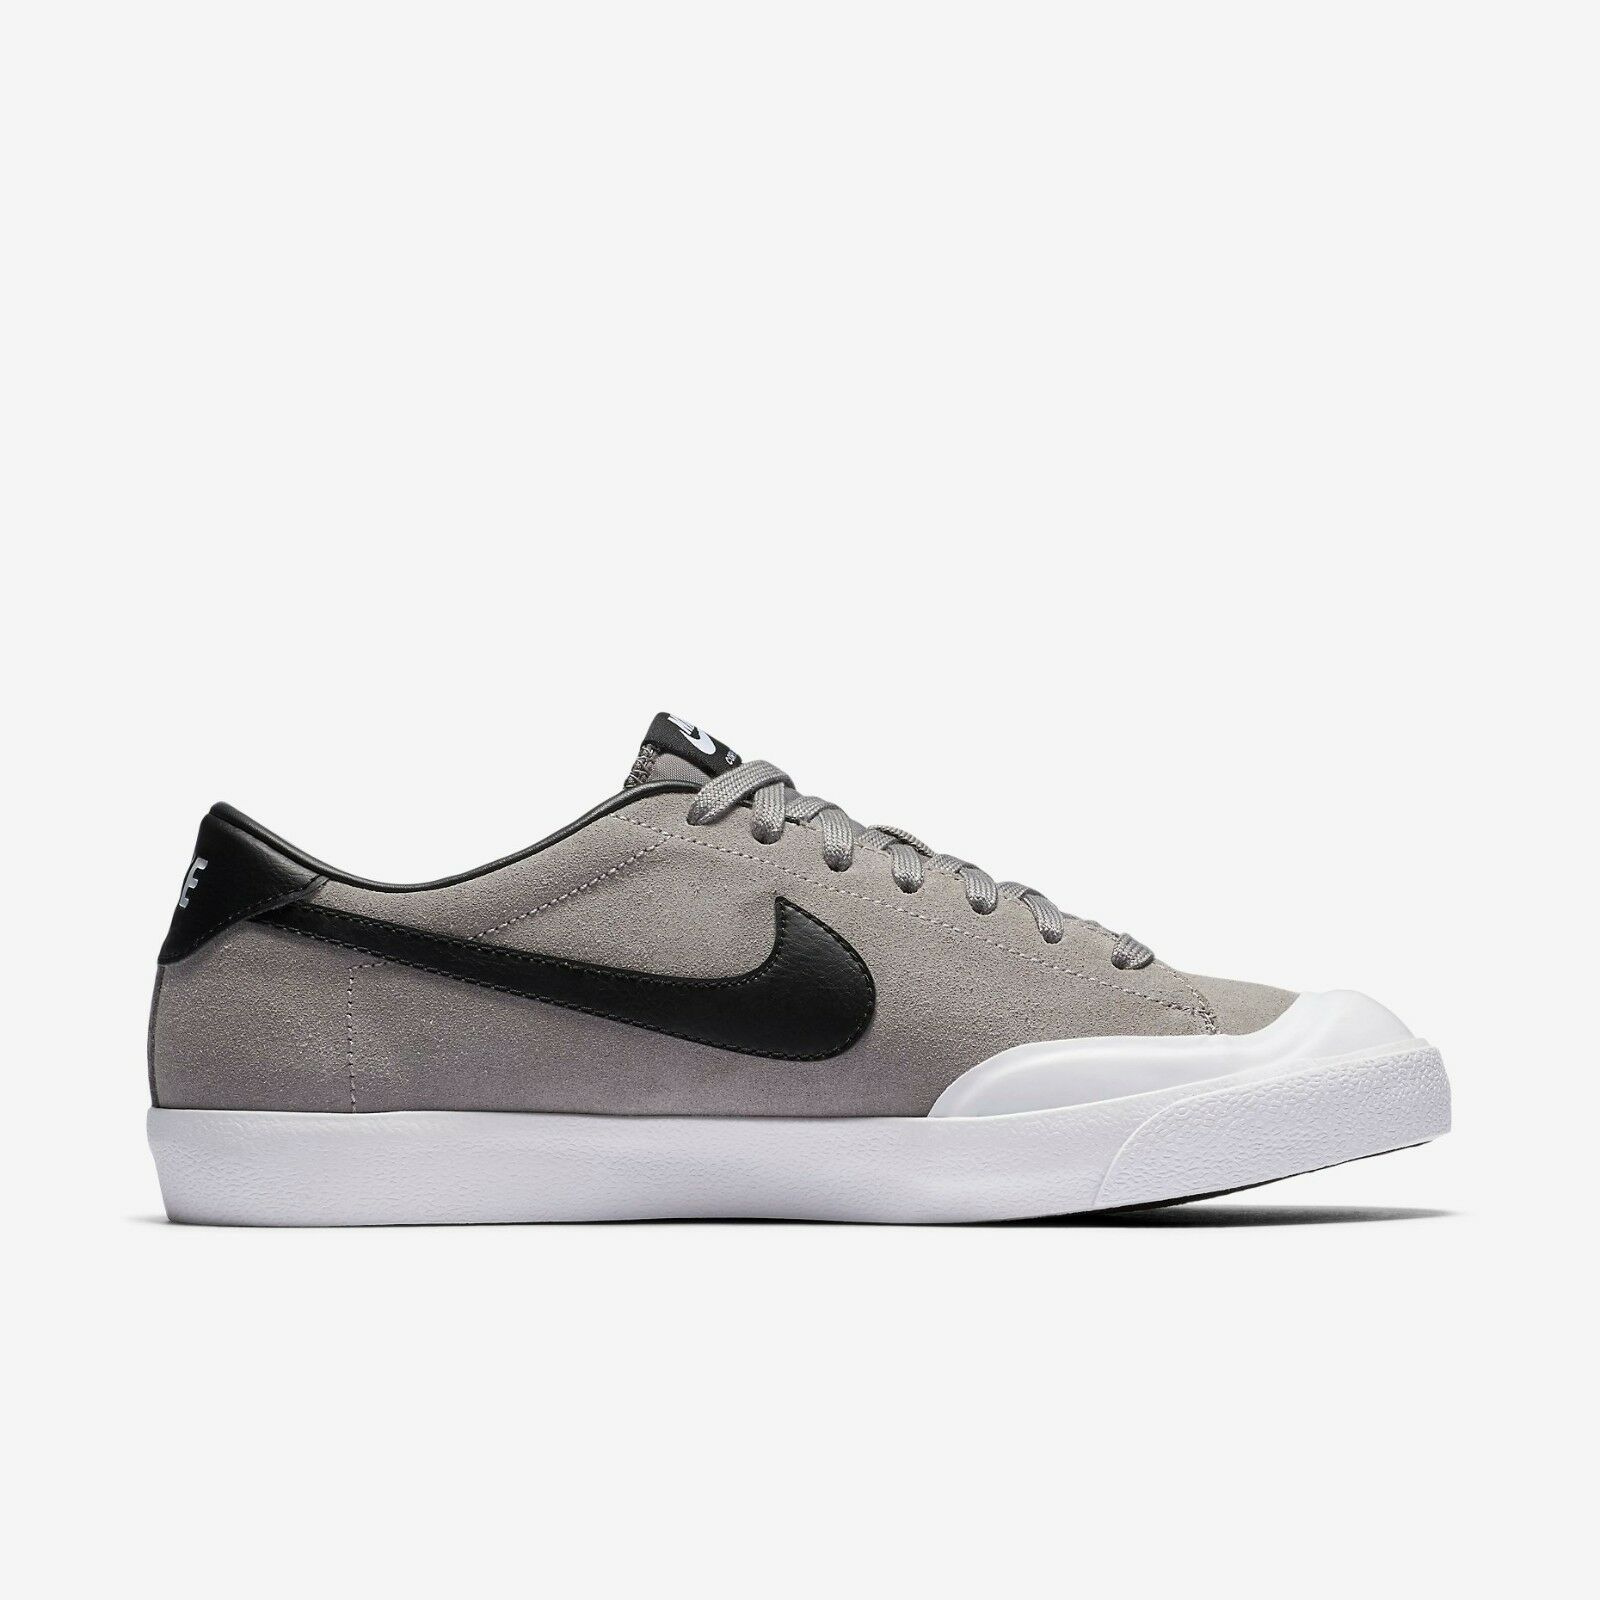 Nike SB Zoom All Court CK Shoes in Dust/Black/White - 8 10.5 11 NWT 806306-002